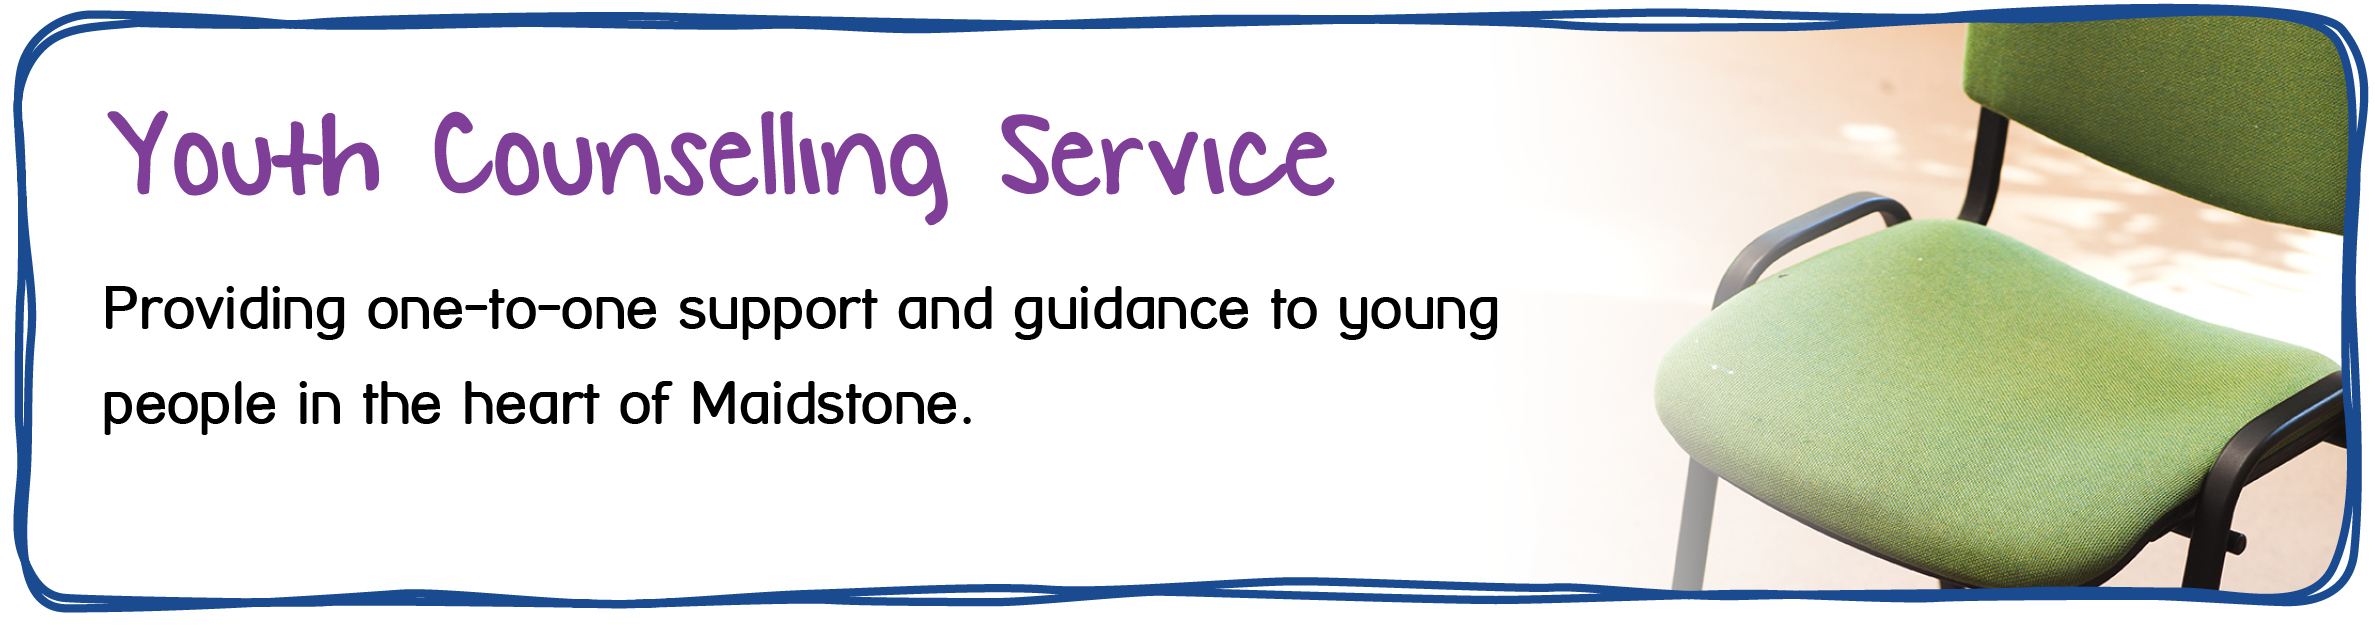 Youth Counselling In Maidstone - Providing one-to-one support and guidance to young people in the heart of Maidstone.